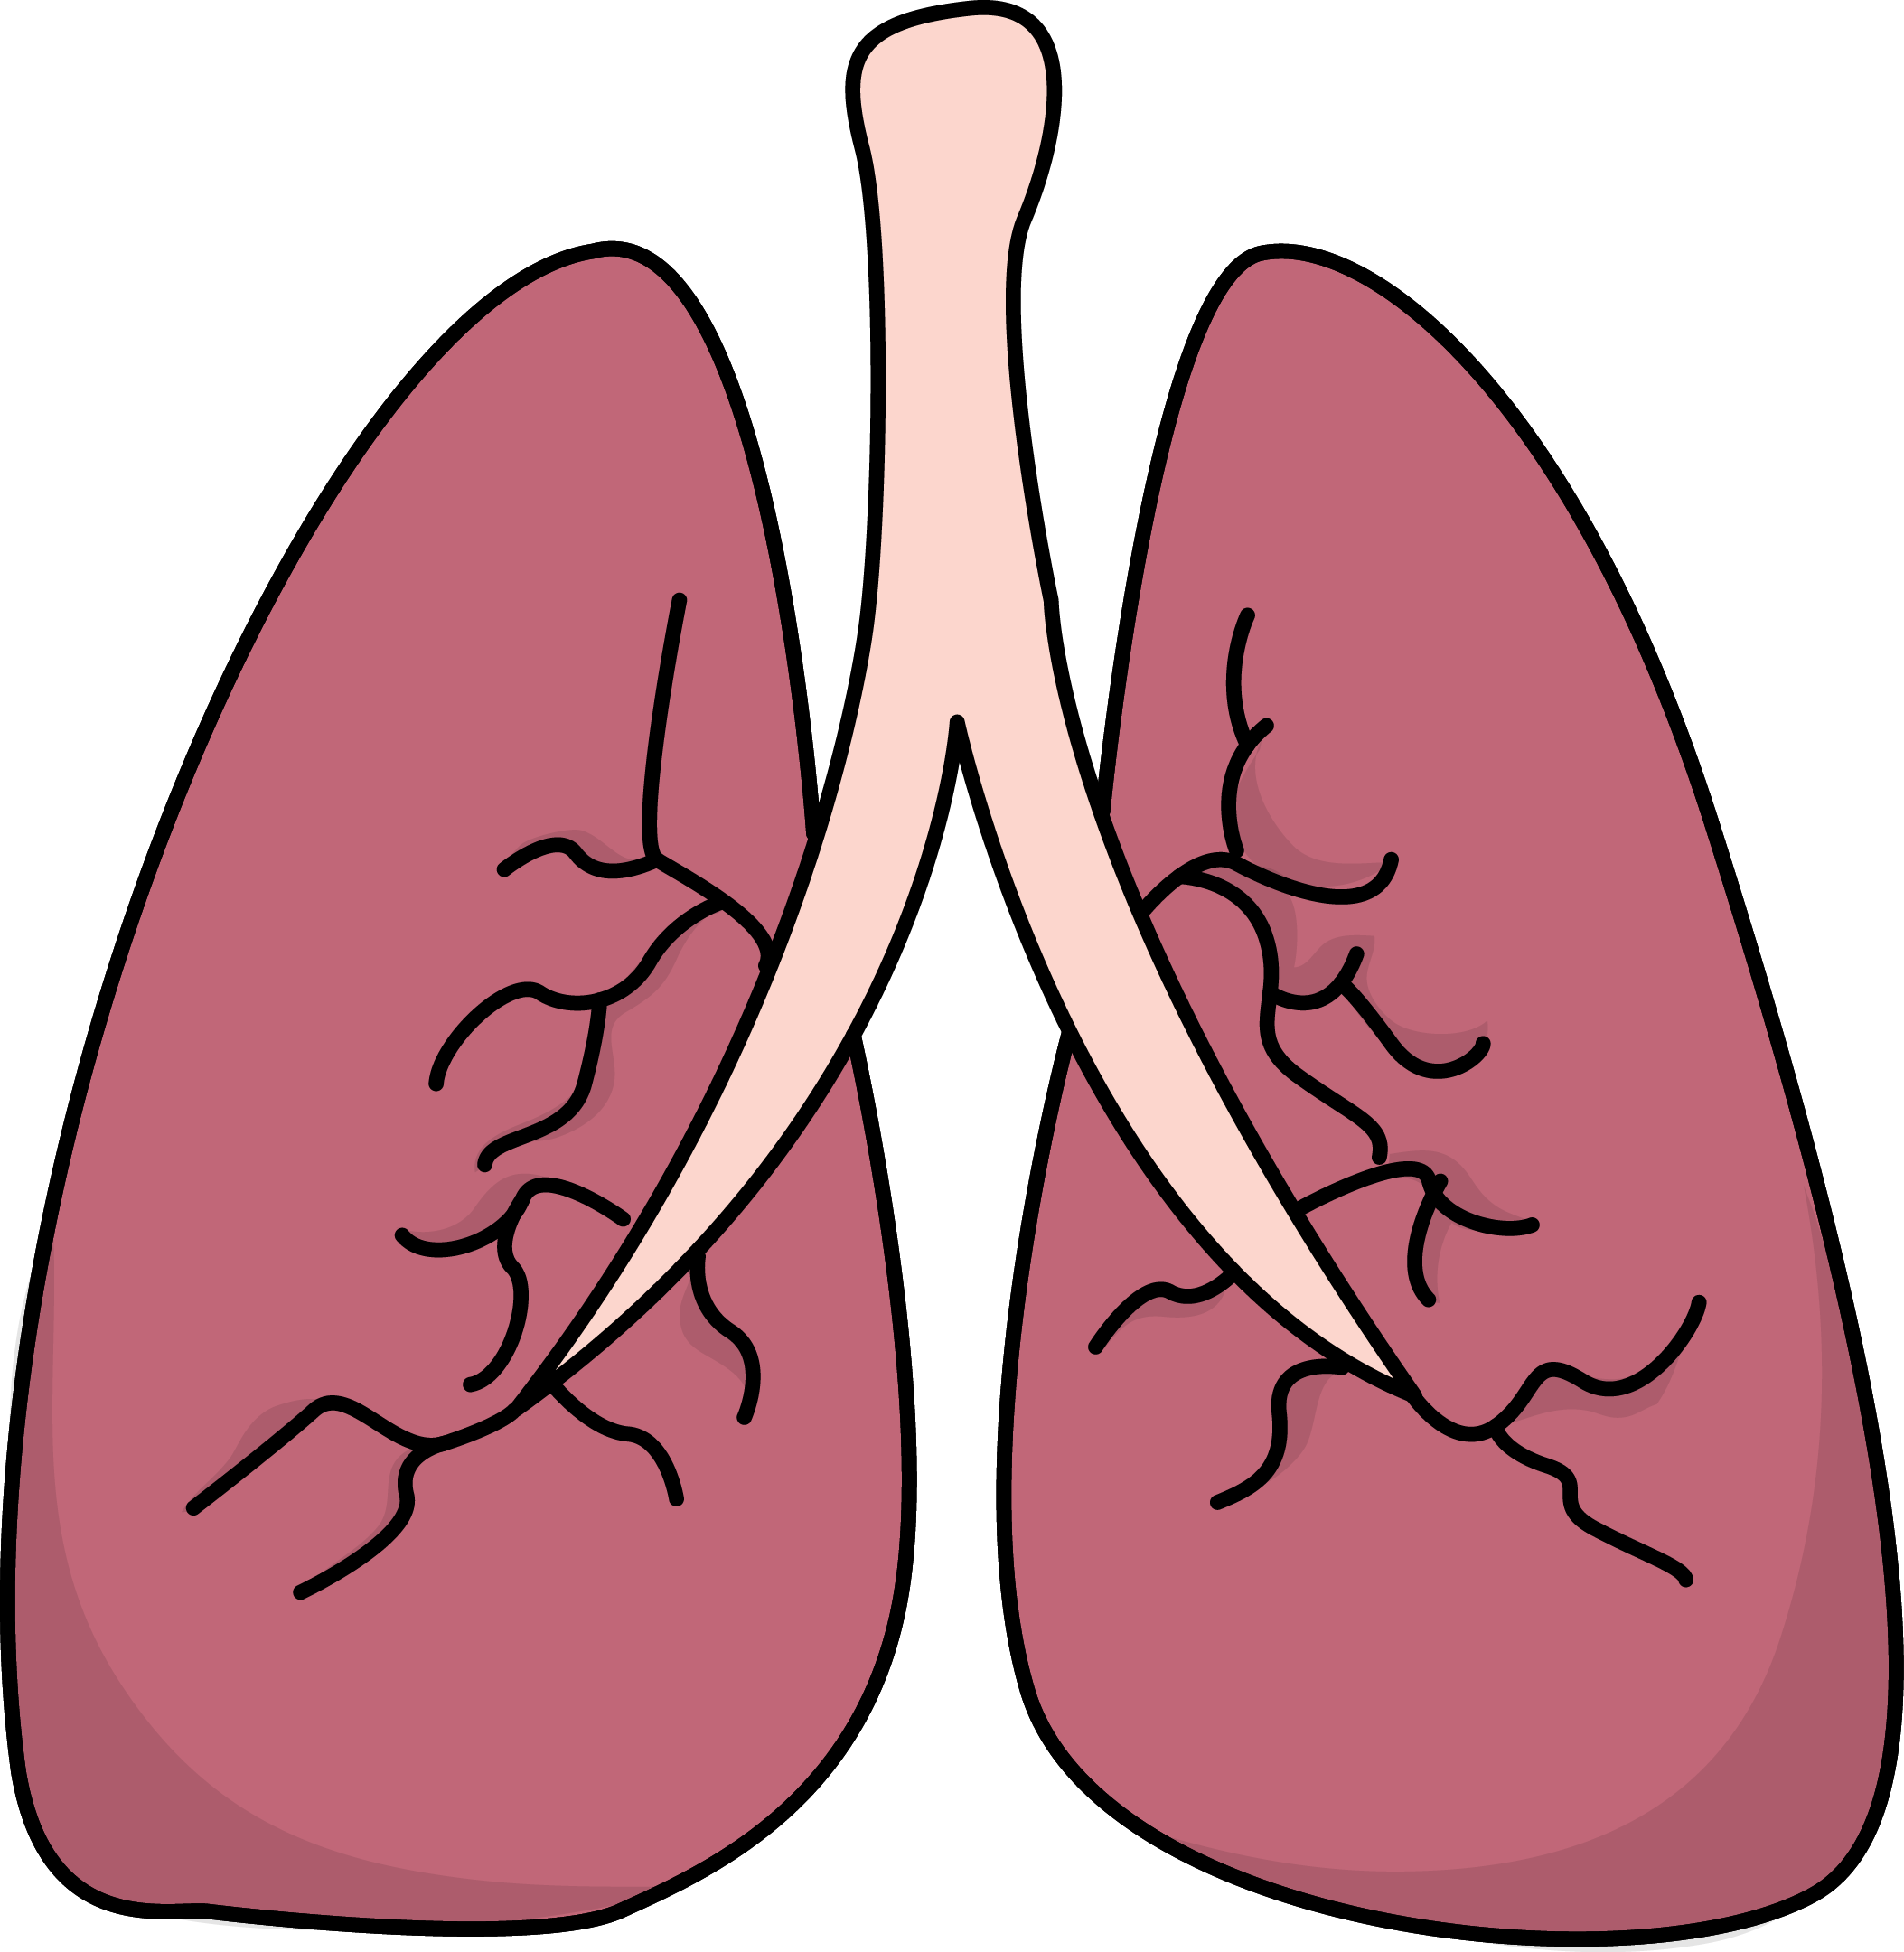 716 Lungs free clipart.